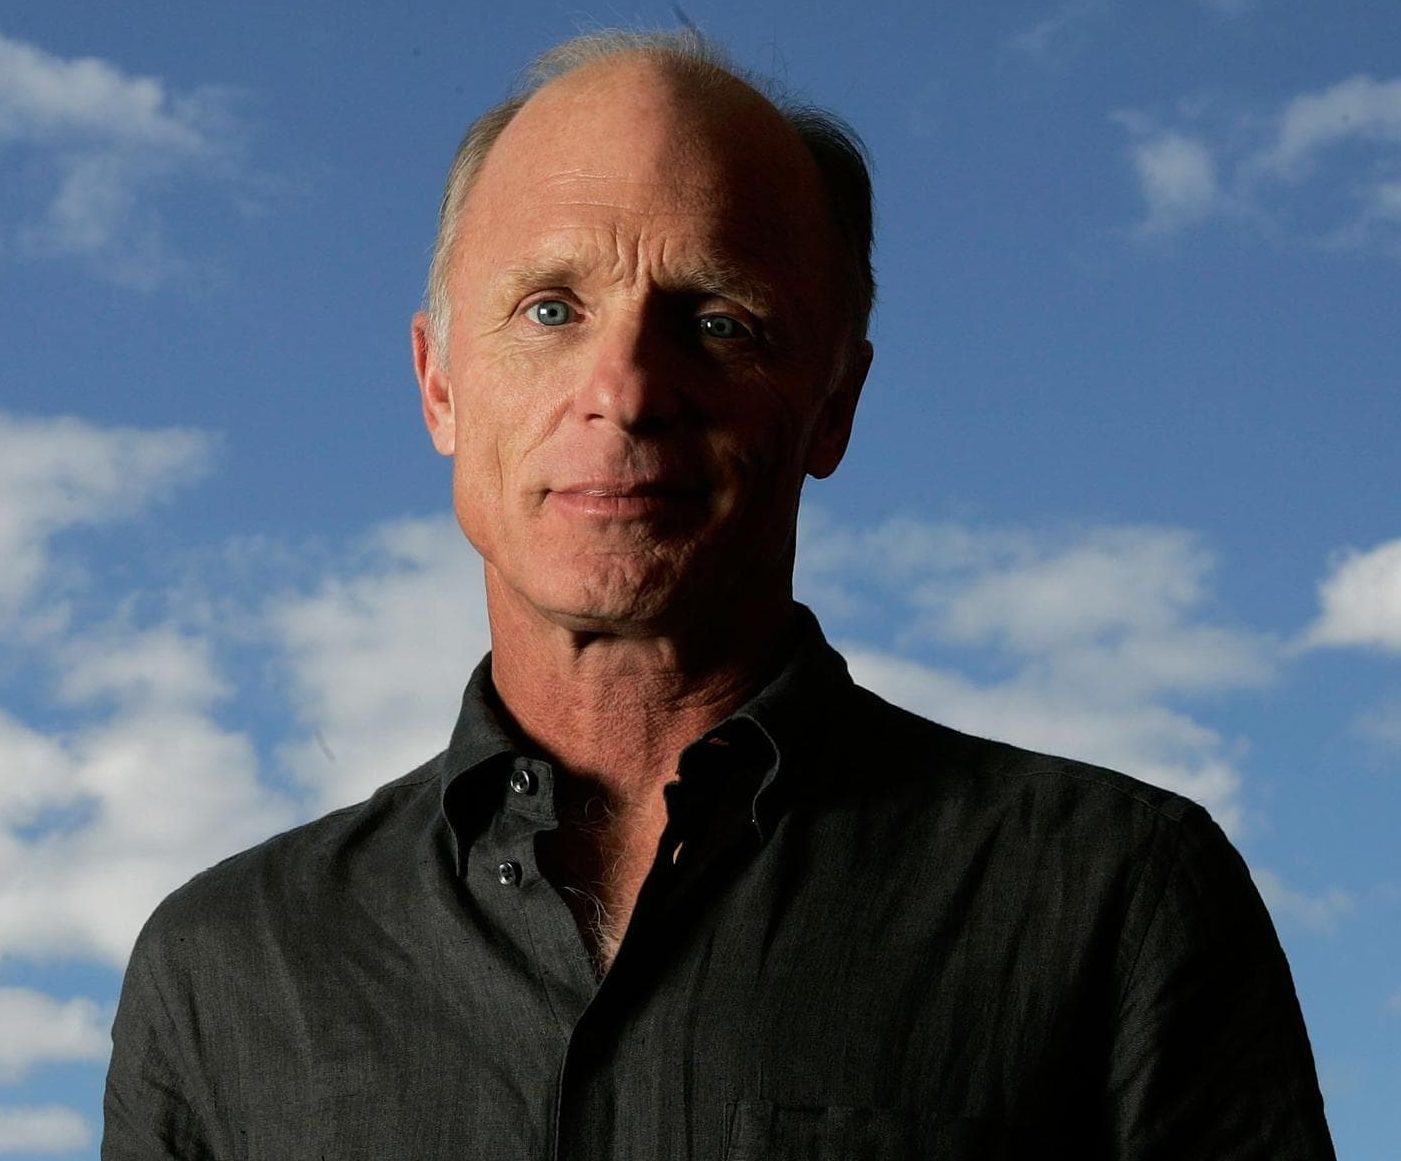 wp4157118 b5f131d3 a085 4420 bec6 d580acad142f 1215730733 e1607085758544 20 Things You Never Knew About Ed Harris